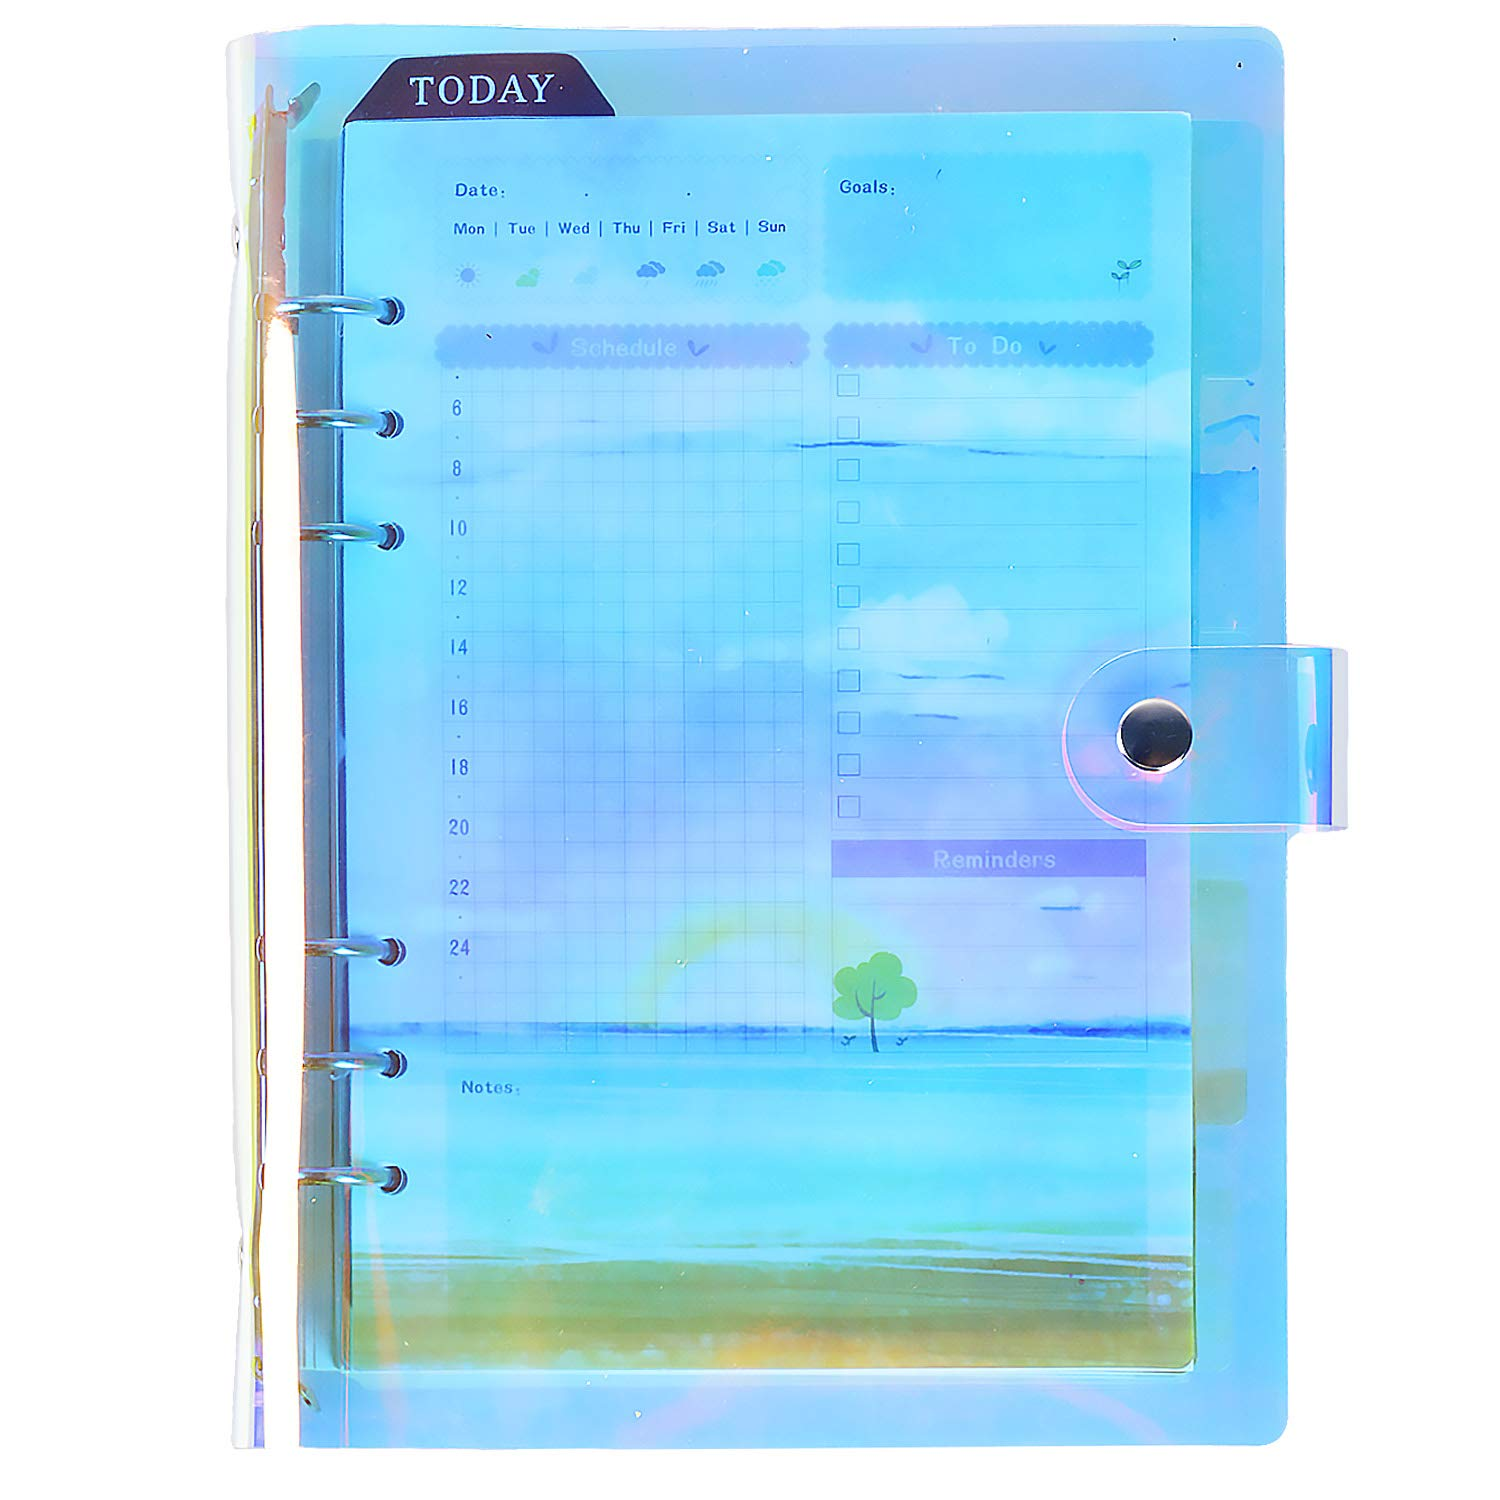 Rancco A5 Writing Notebook 6-Ring Refillable Loose Leaf Binder Journal Personal Daily Planner Travel Diary Agenda Time Management,Notepad Cover+90 Insert Page+6 Index Divide+Ruler+Calendar+Card Pocket